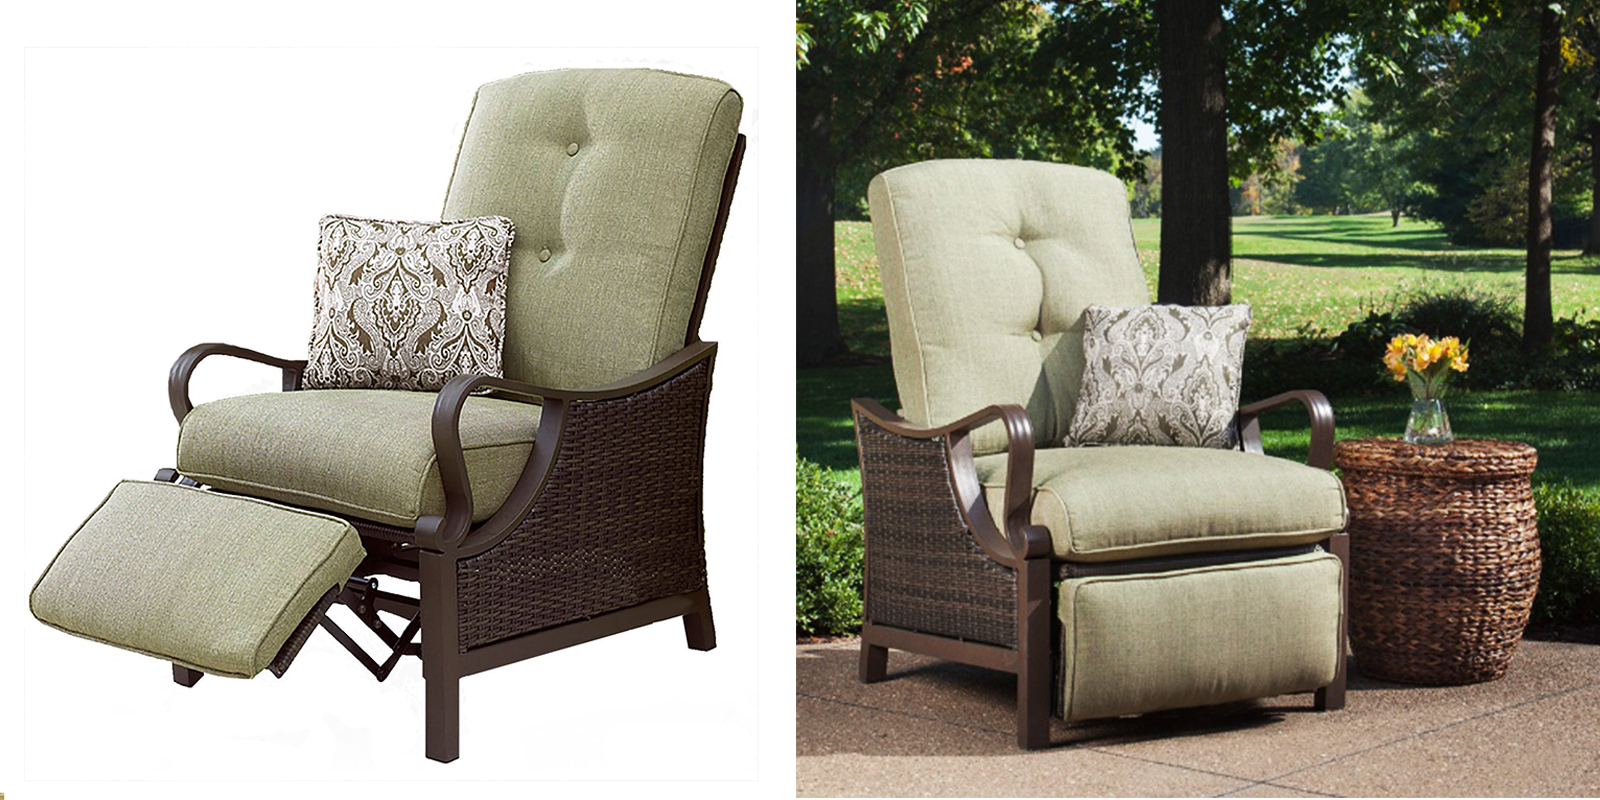 Outdoor Reclining Chair 25 Best Patio Chairs To Buy Right Now